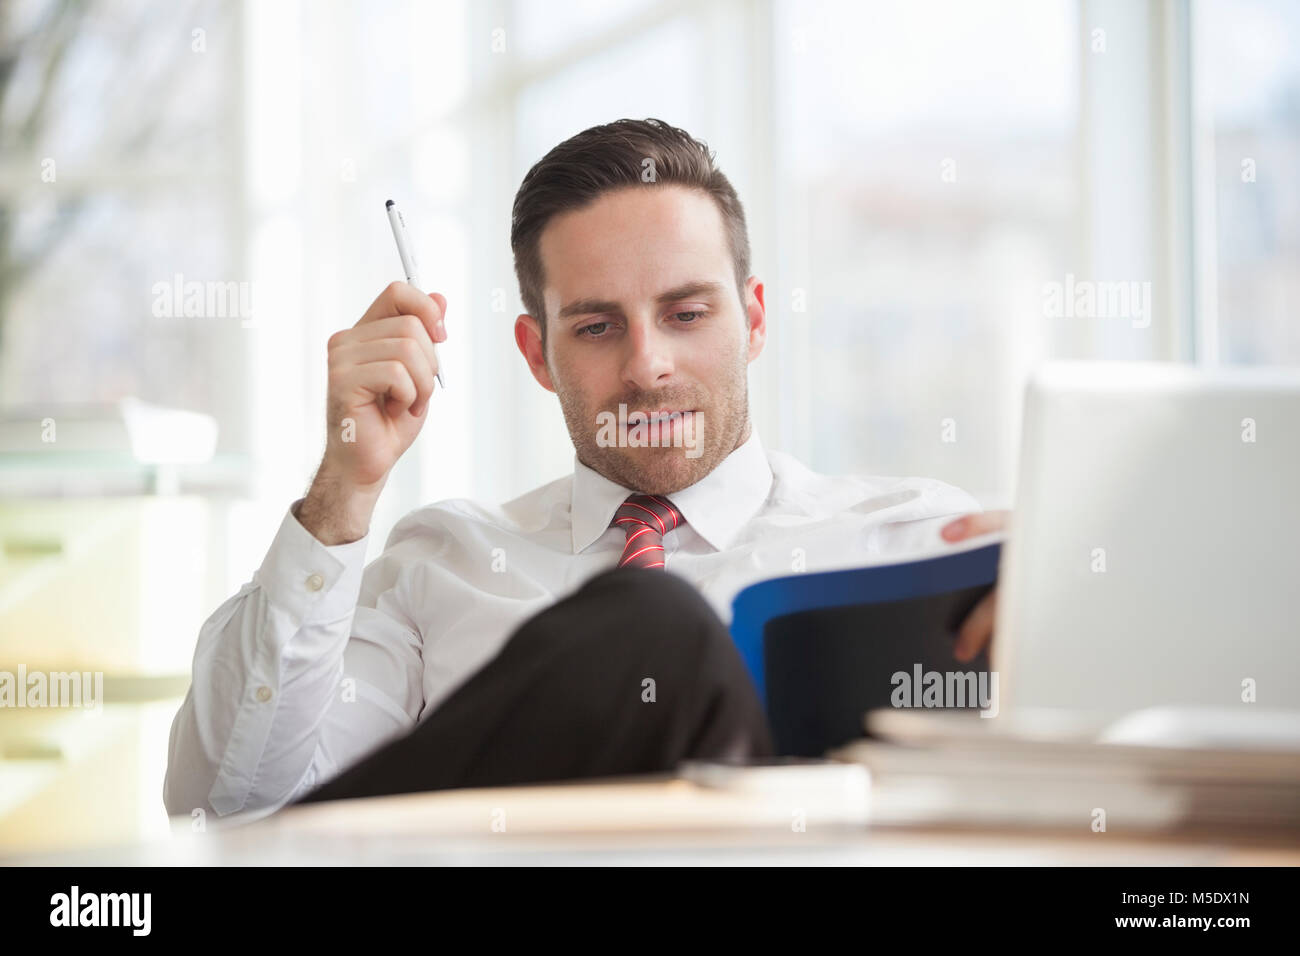 Young Woman Reading book in office Photo Stock